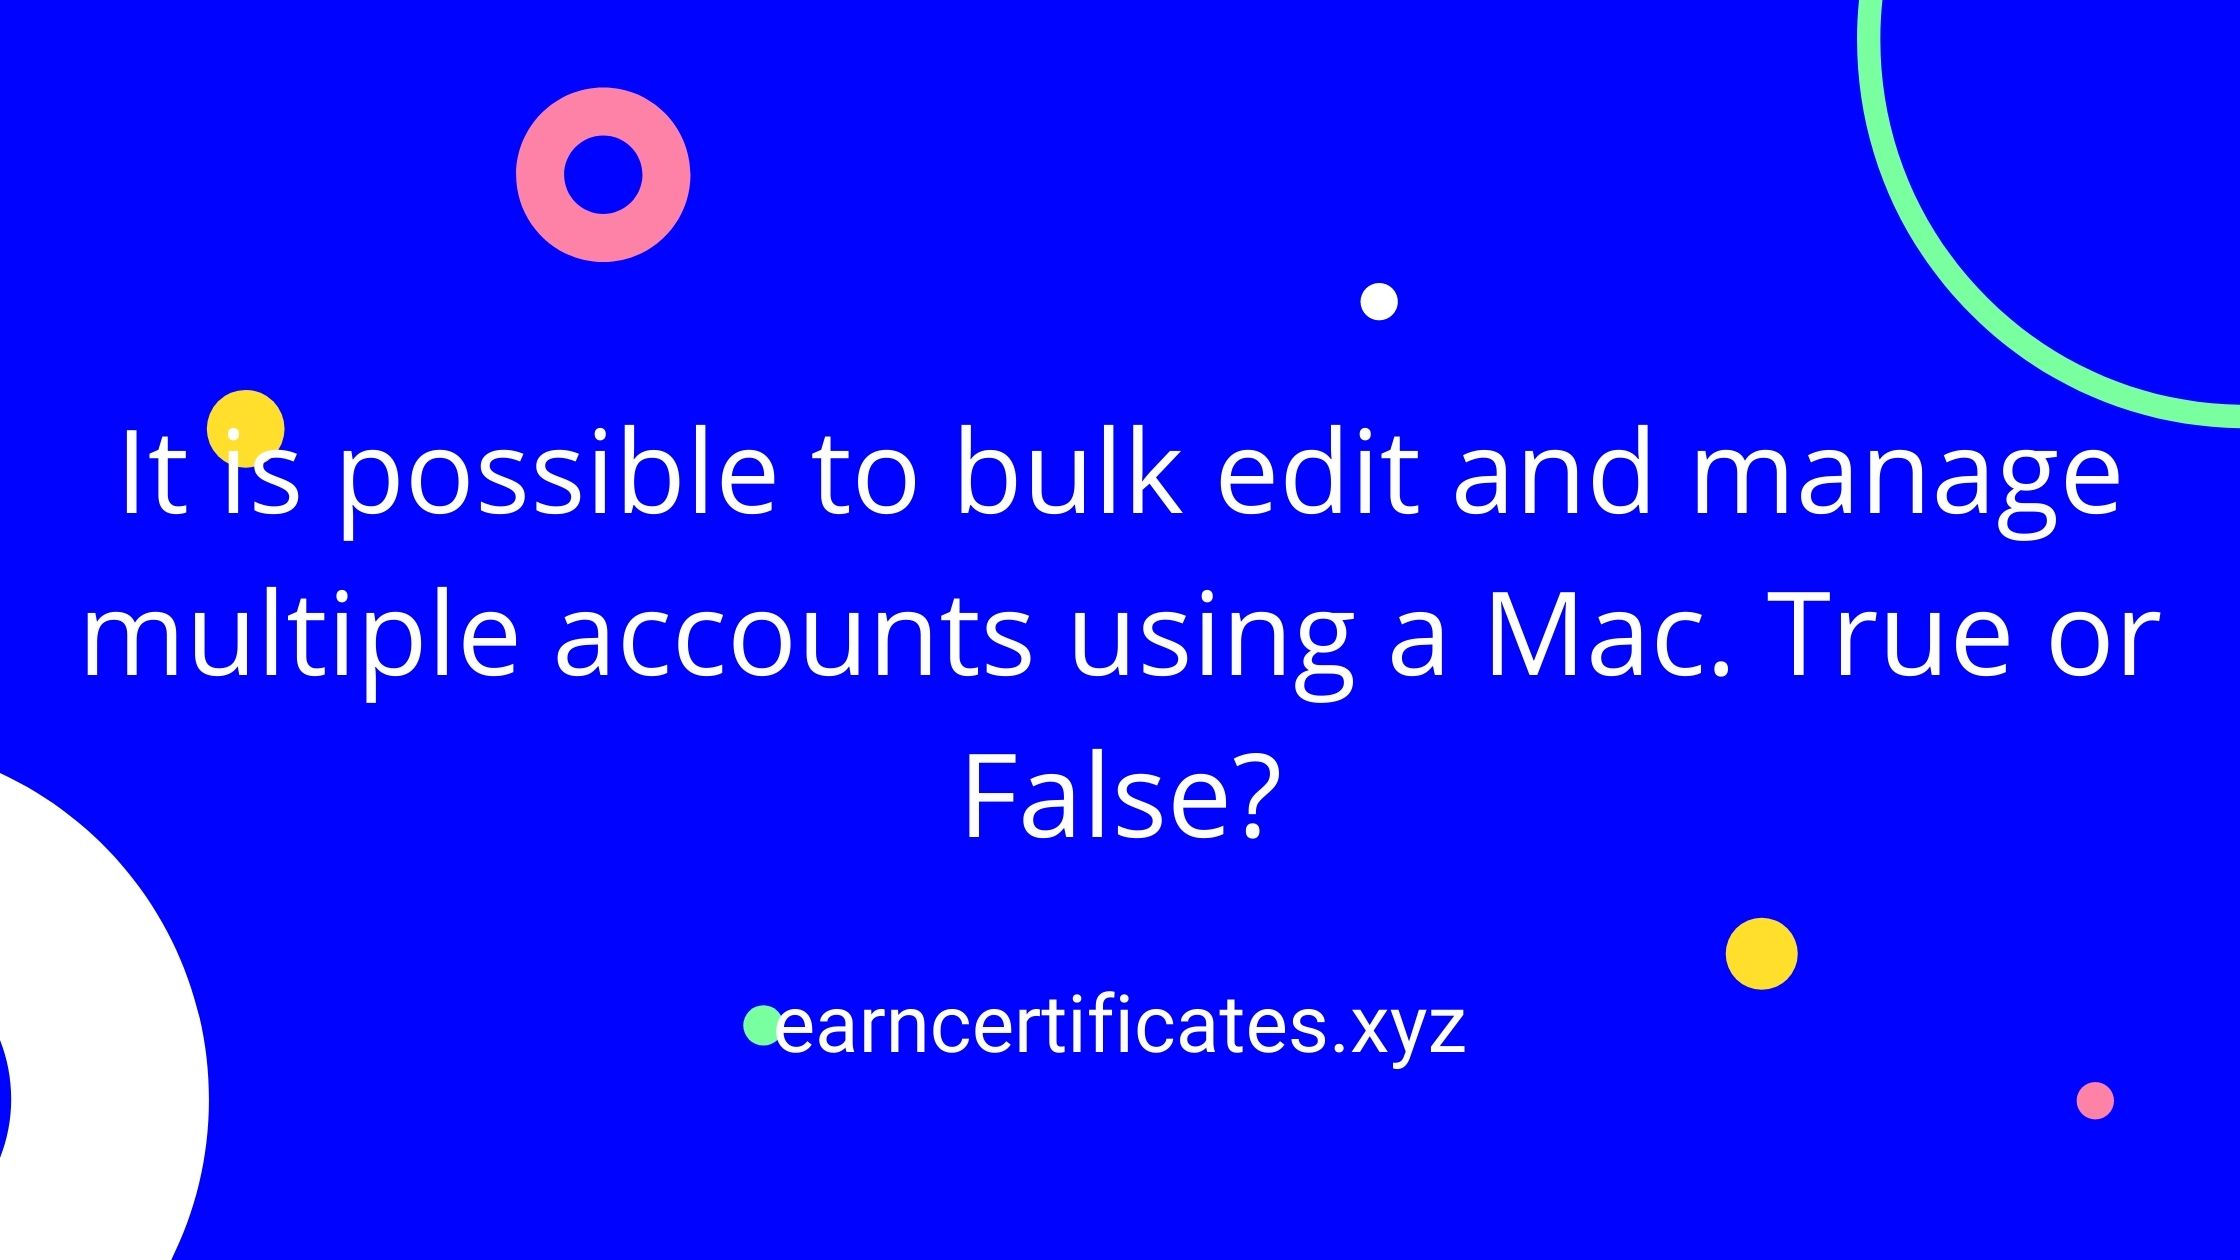 It is possible to bulk edit and manage multiple accounts using a Mac. True or False?